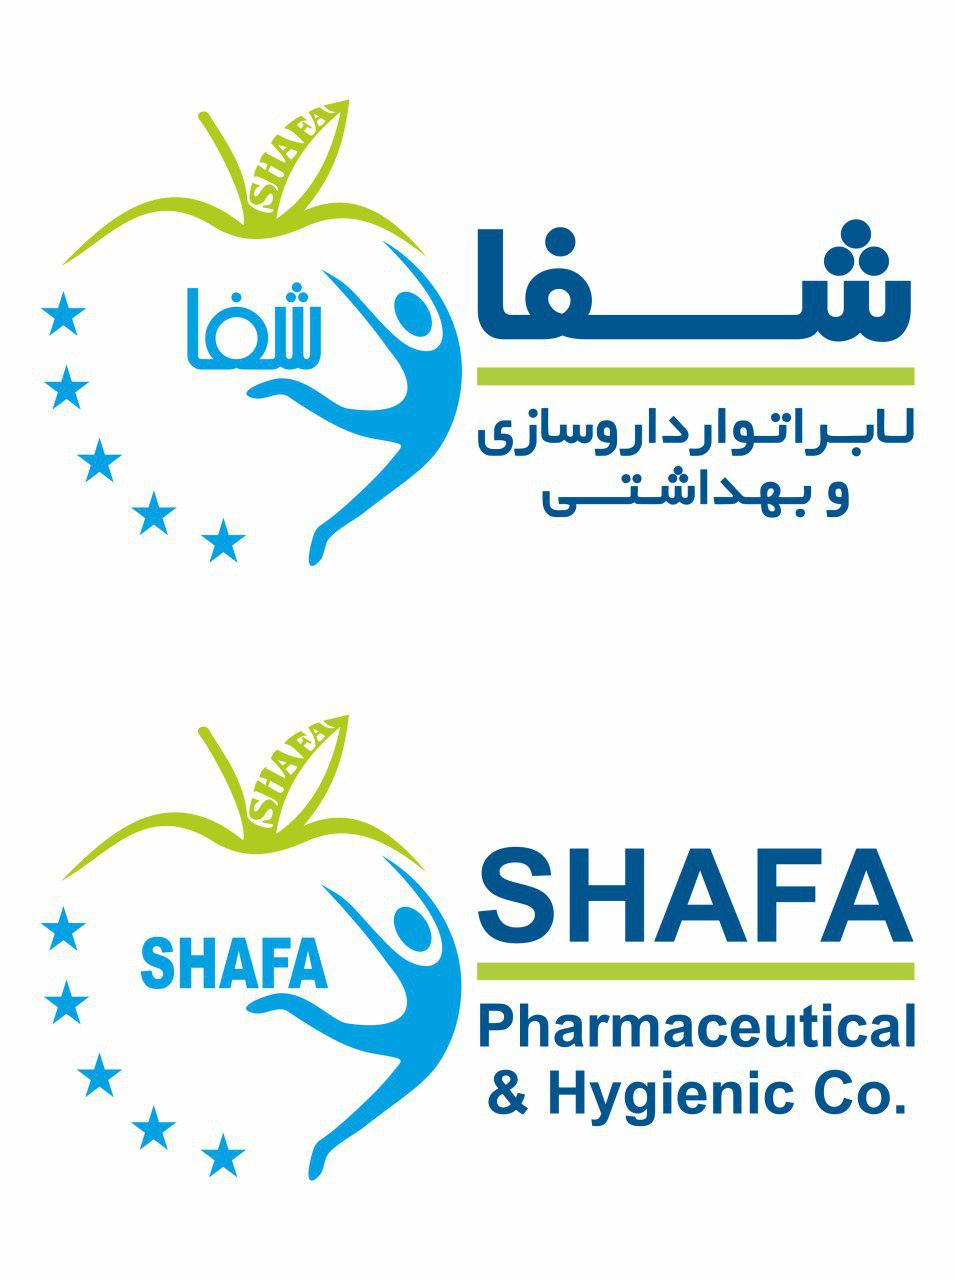 SHAFA Pharmaceutical and Higienic Company